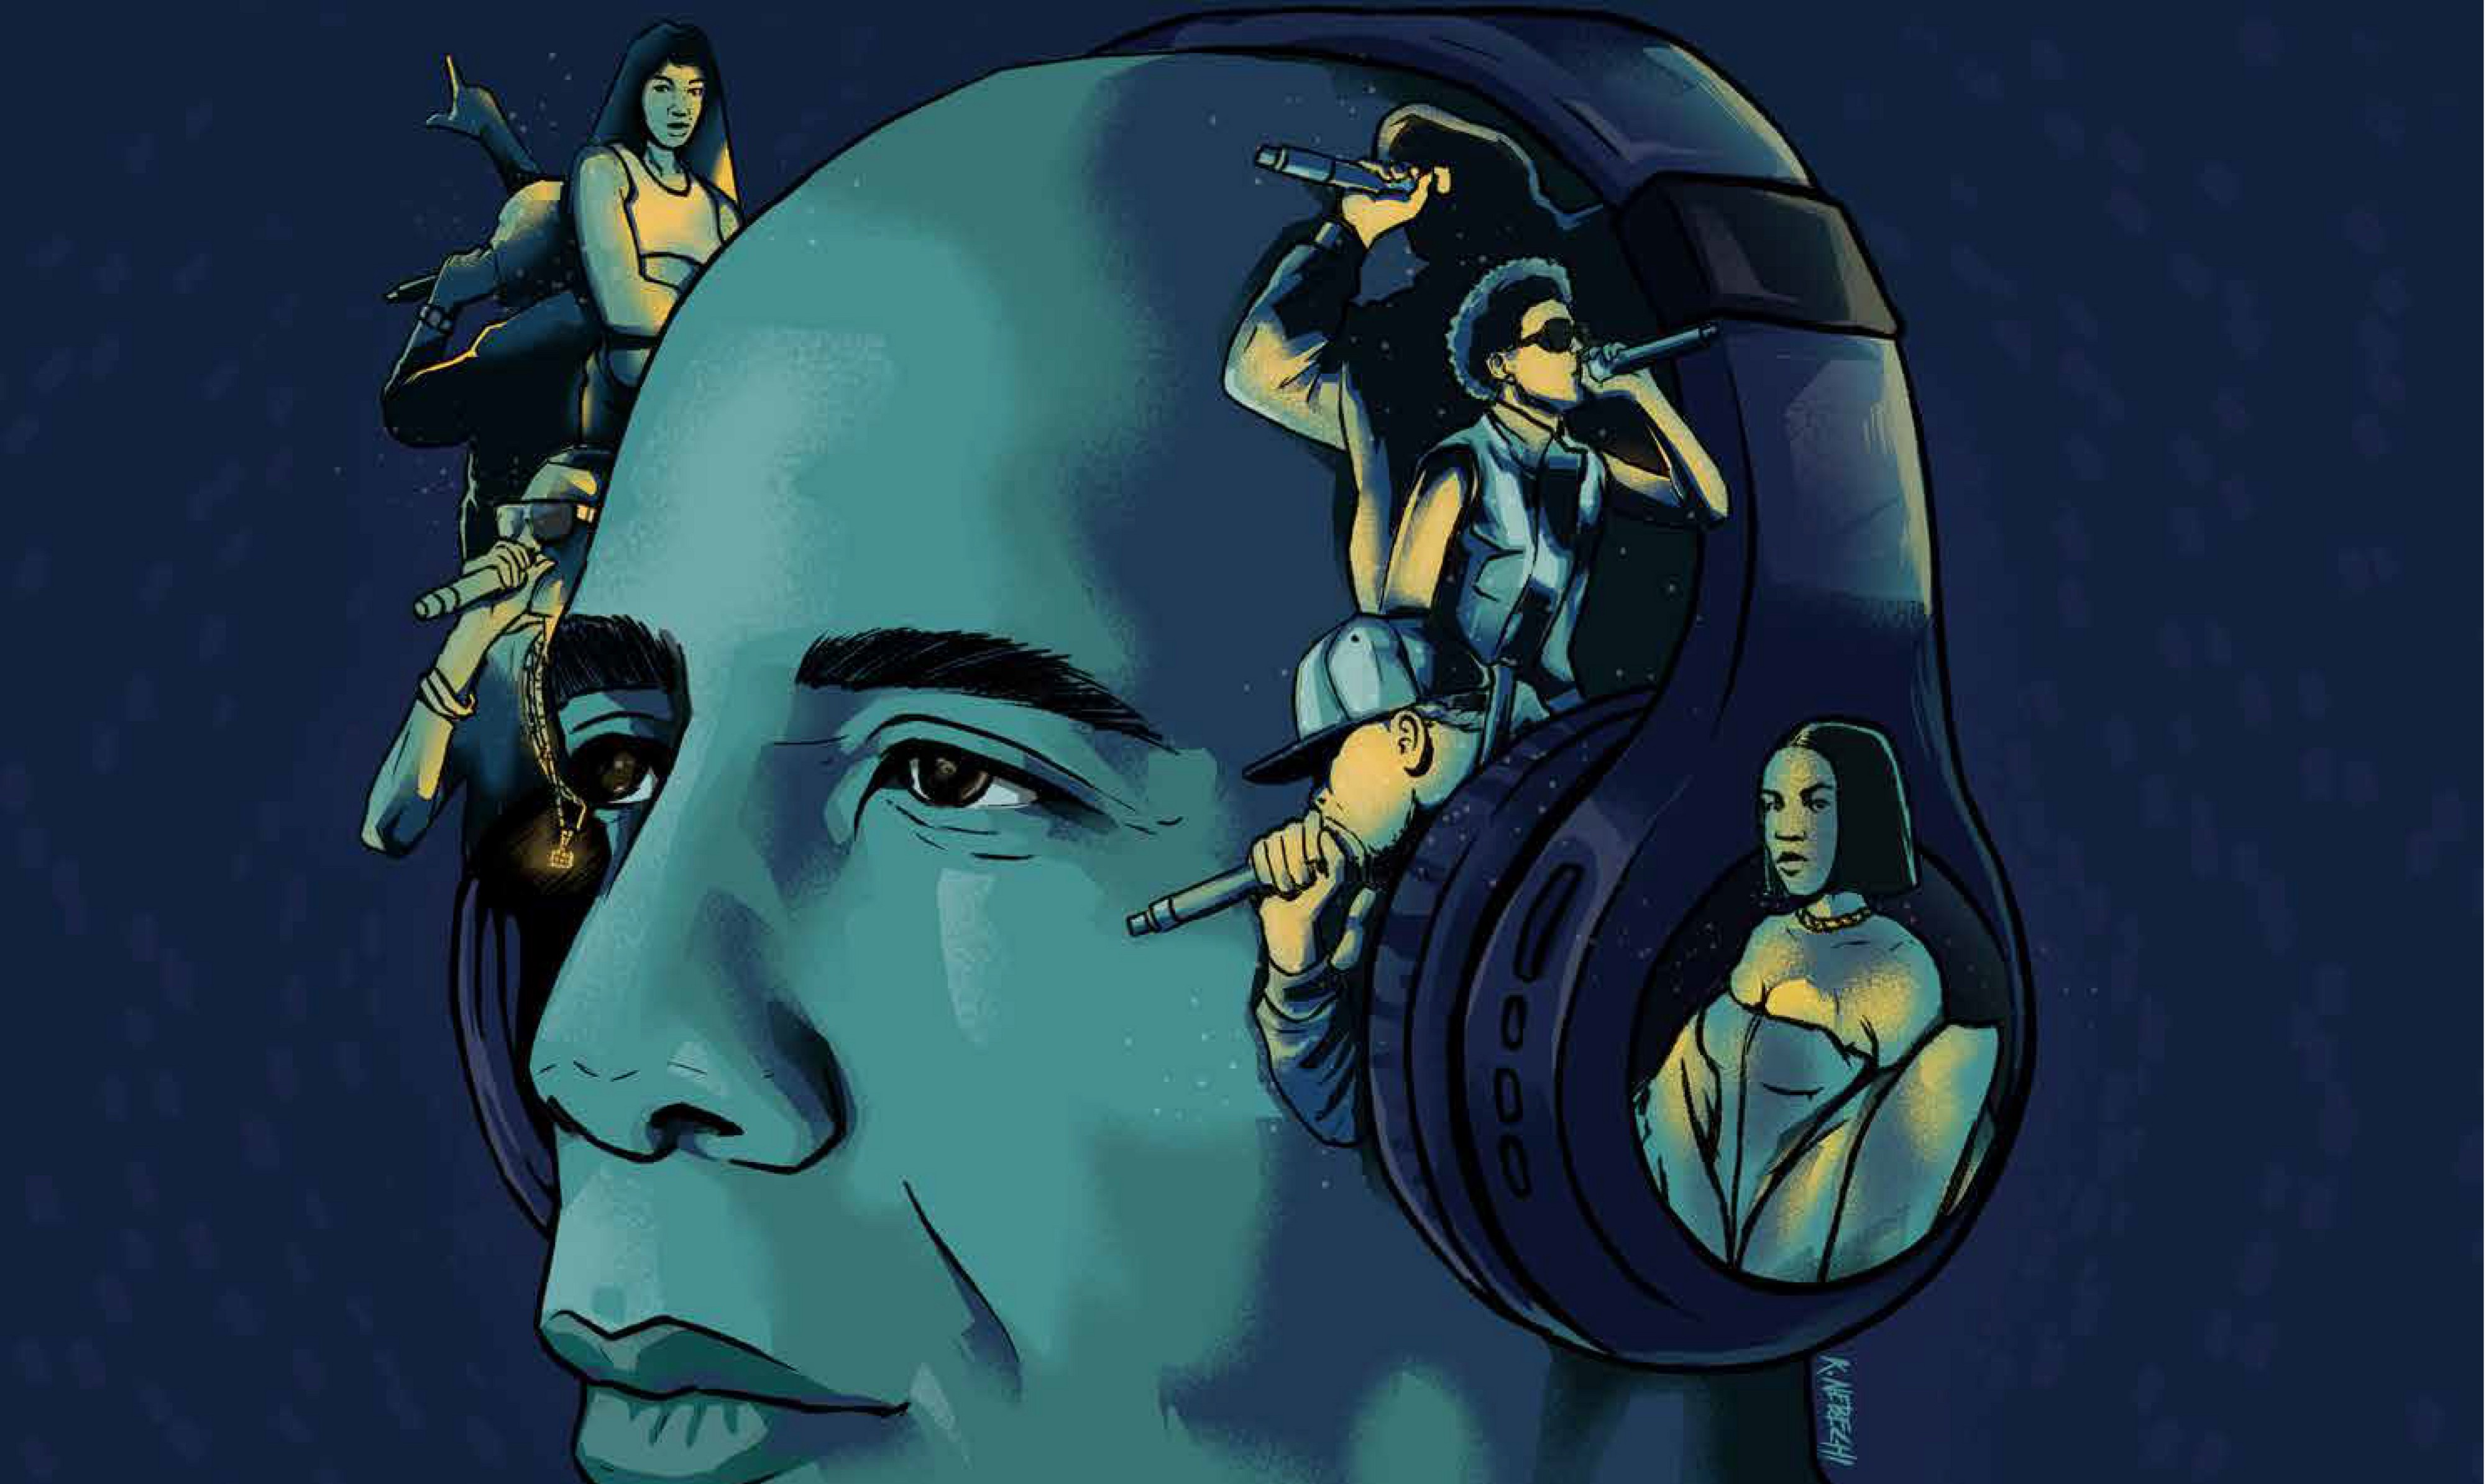 A close-up illustration of a man wearing headphones. Silhouettes of various rappers are drawn across the headphones.